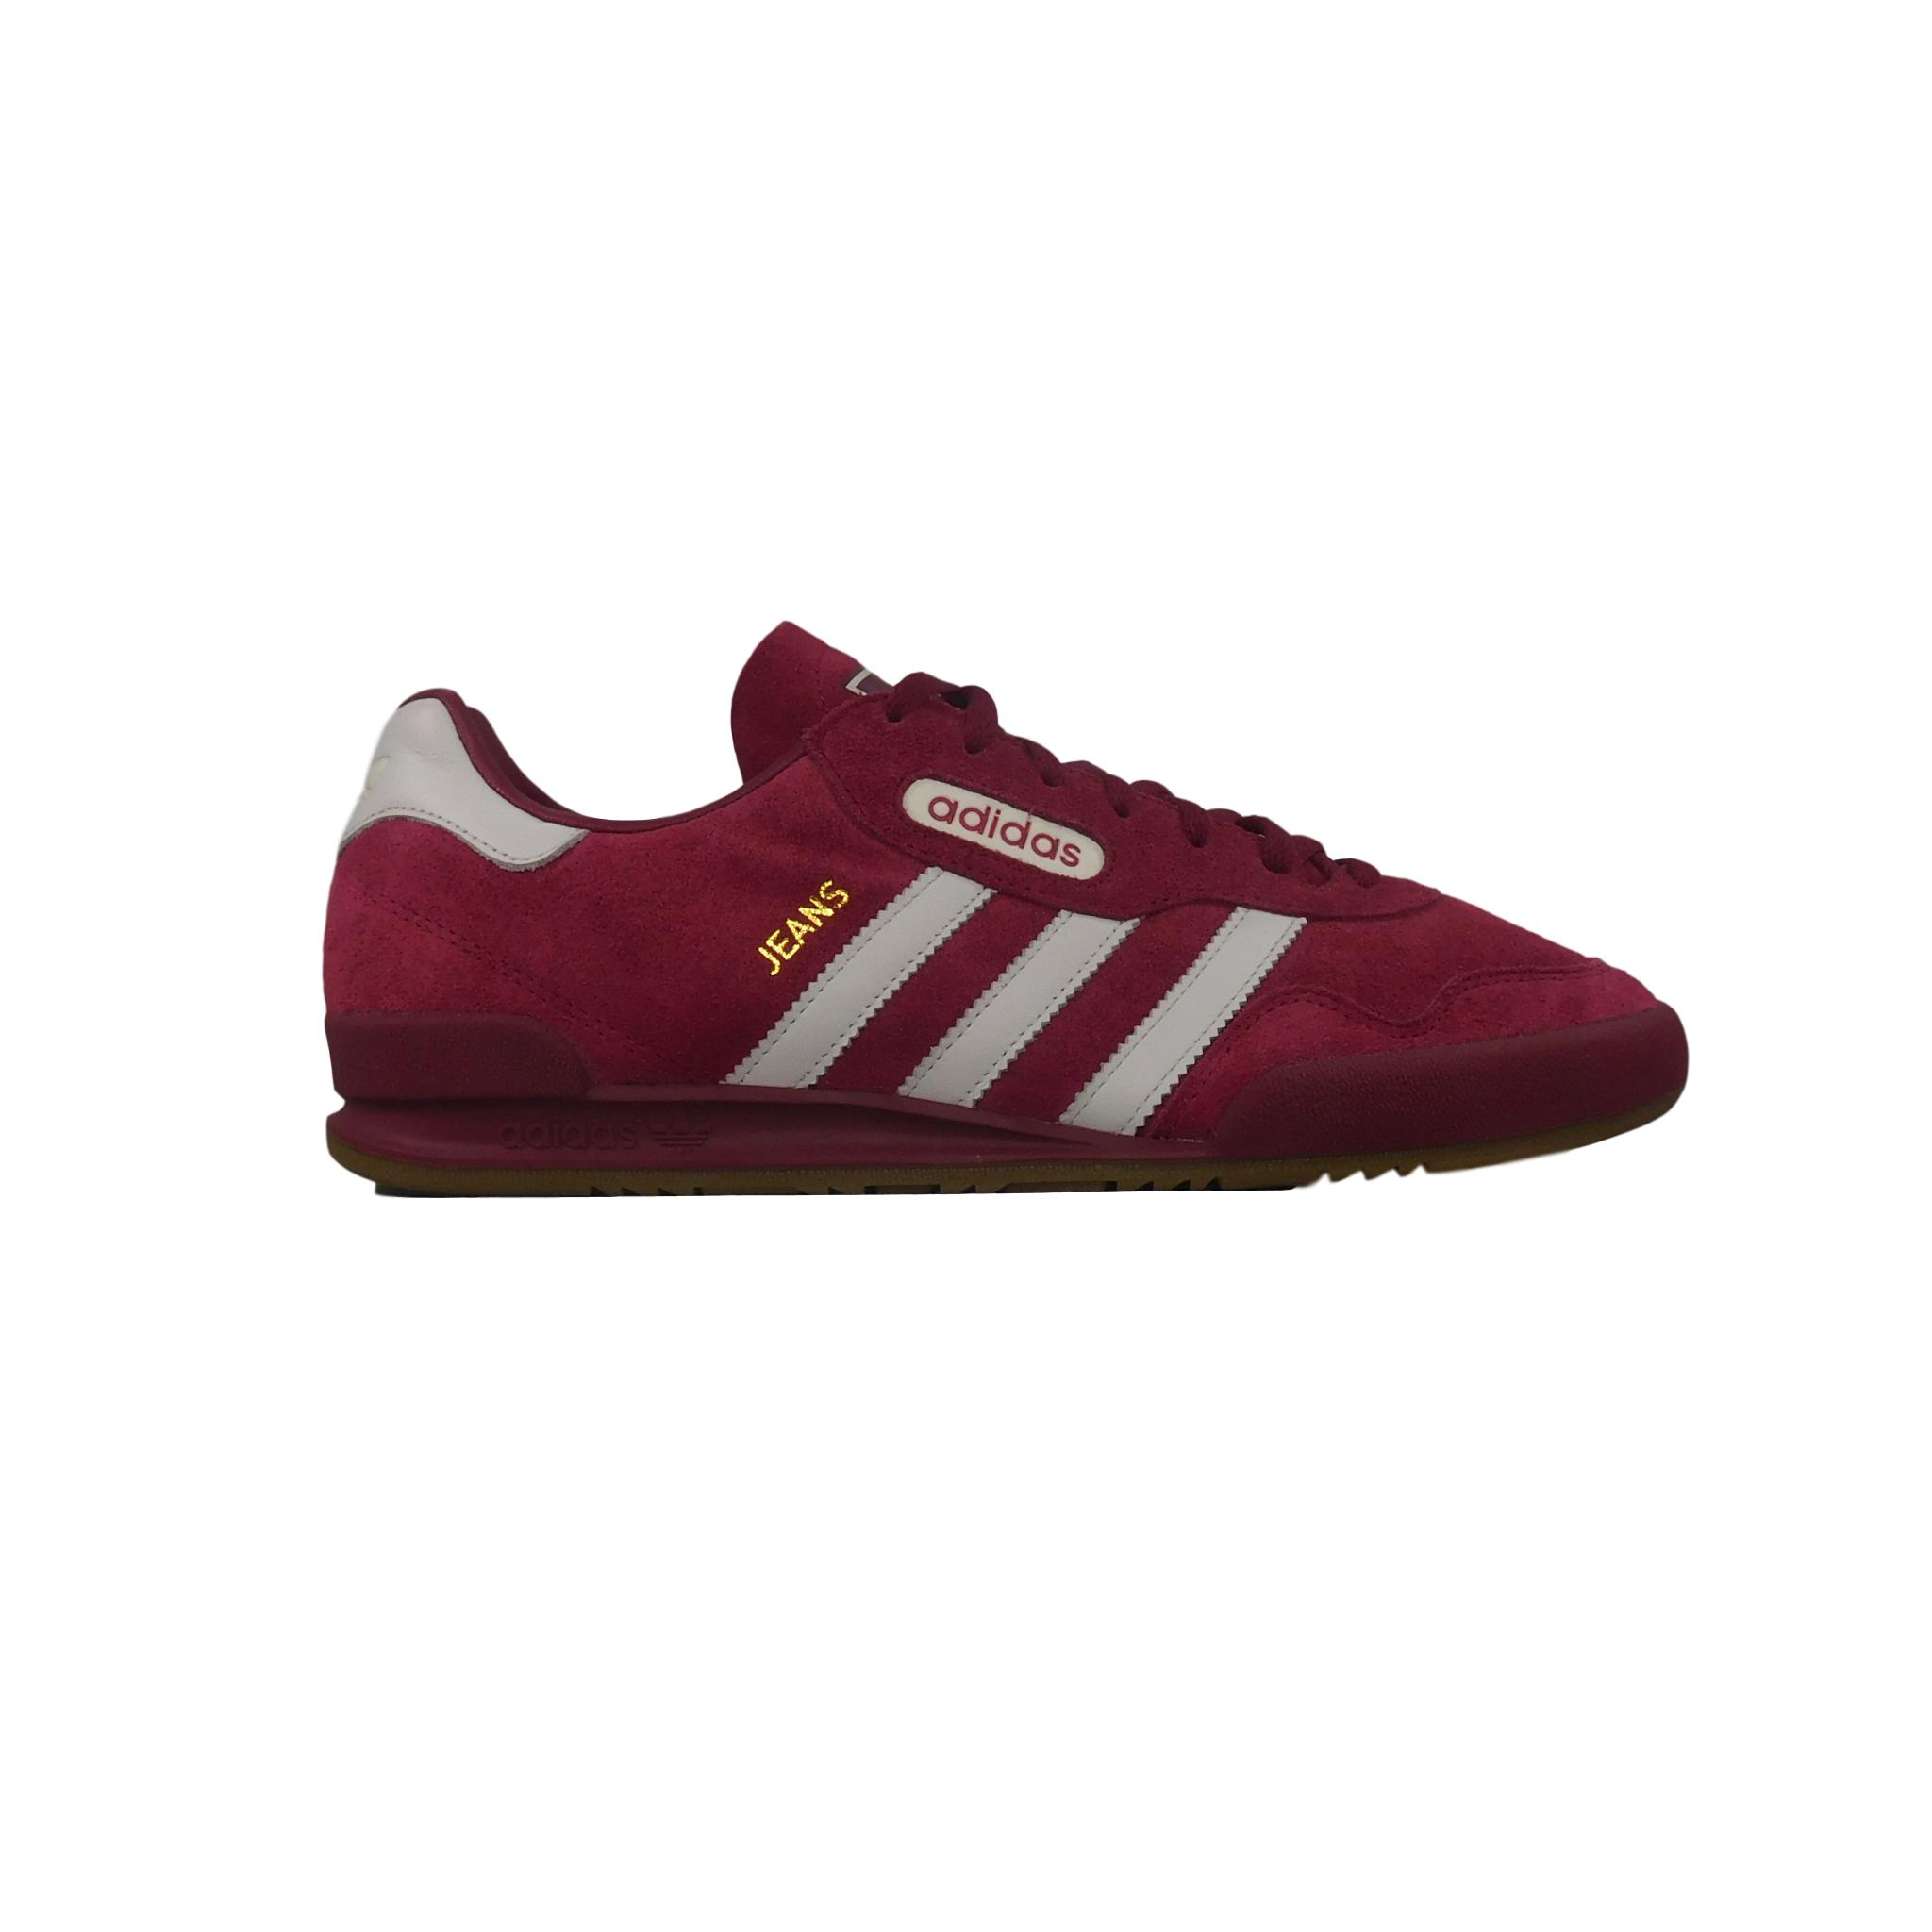 ee6c54db81 Buy adidas Jeans Super - BY9773